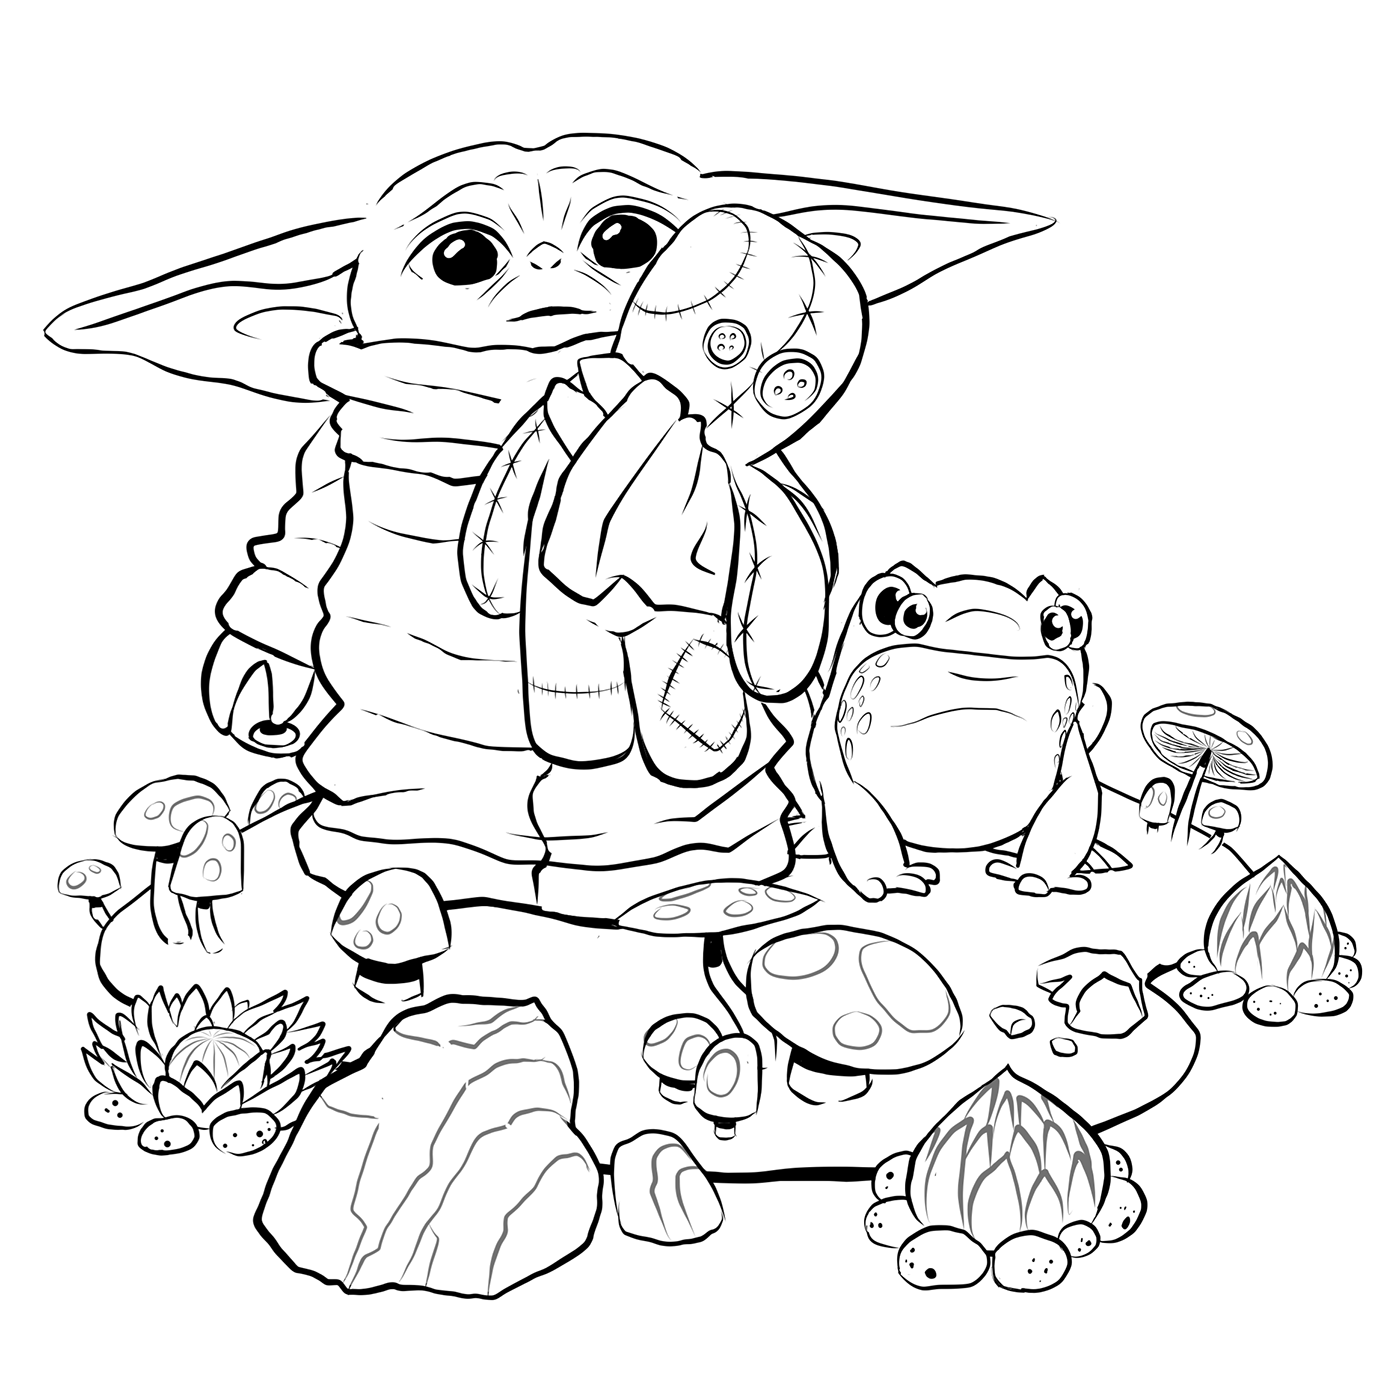 coloring page yoda i created a coloring page for bebe yoda the child enjoy page coloring yoda